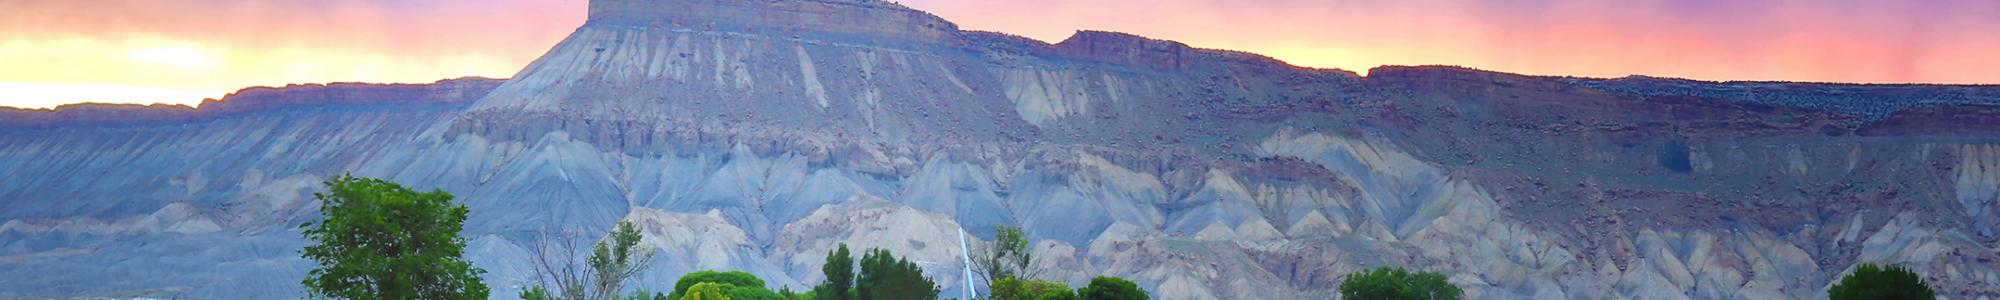 Bookcliffs Visit Grand Junction Colorado